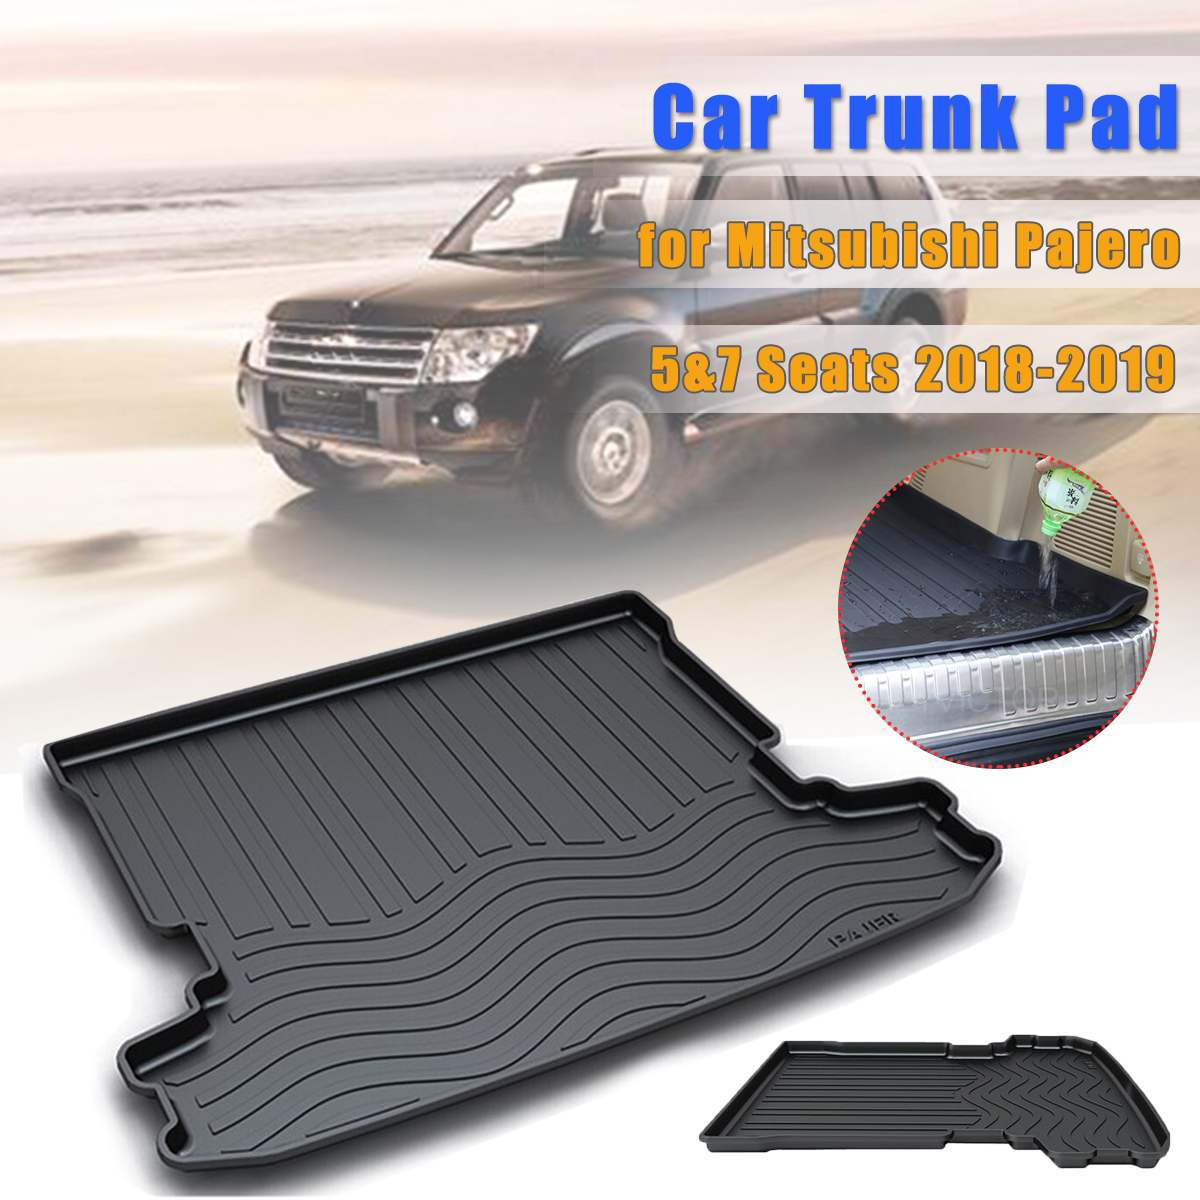 Car Cargo Liner Floor Mat Rear Trunk Mat For Mitsubishi Pajero 5 & 7 Seats 2006-2010 2011 2012 2013 2014 2015 2016 2017 2018